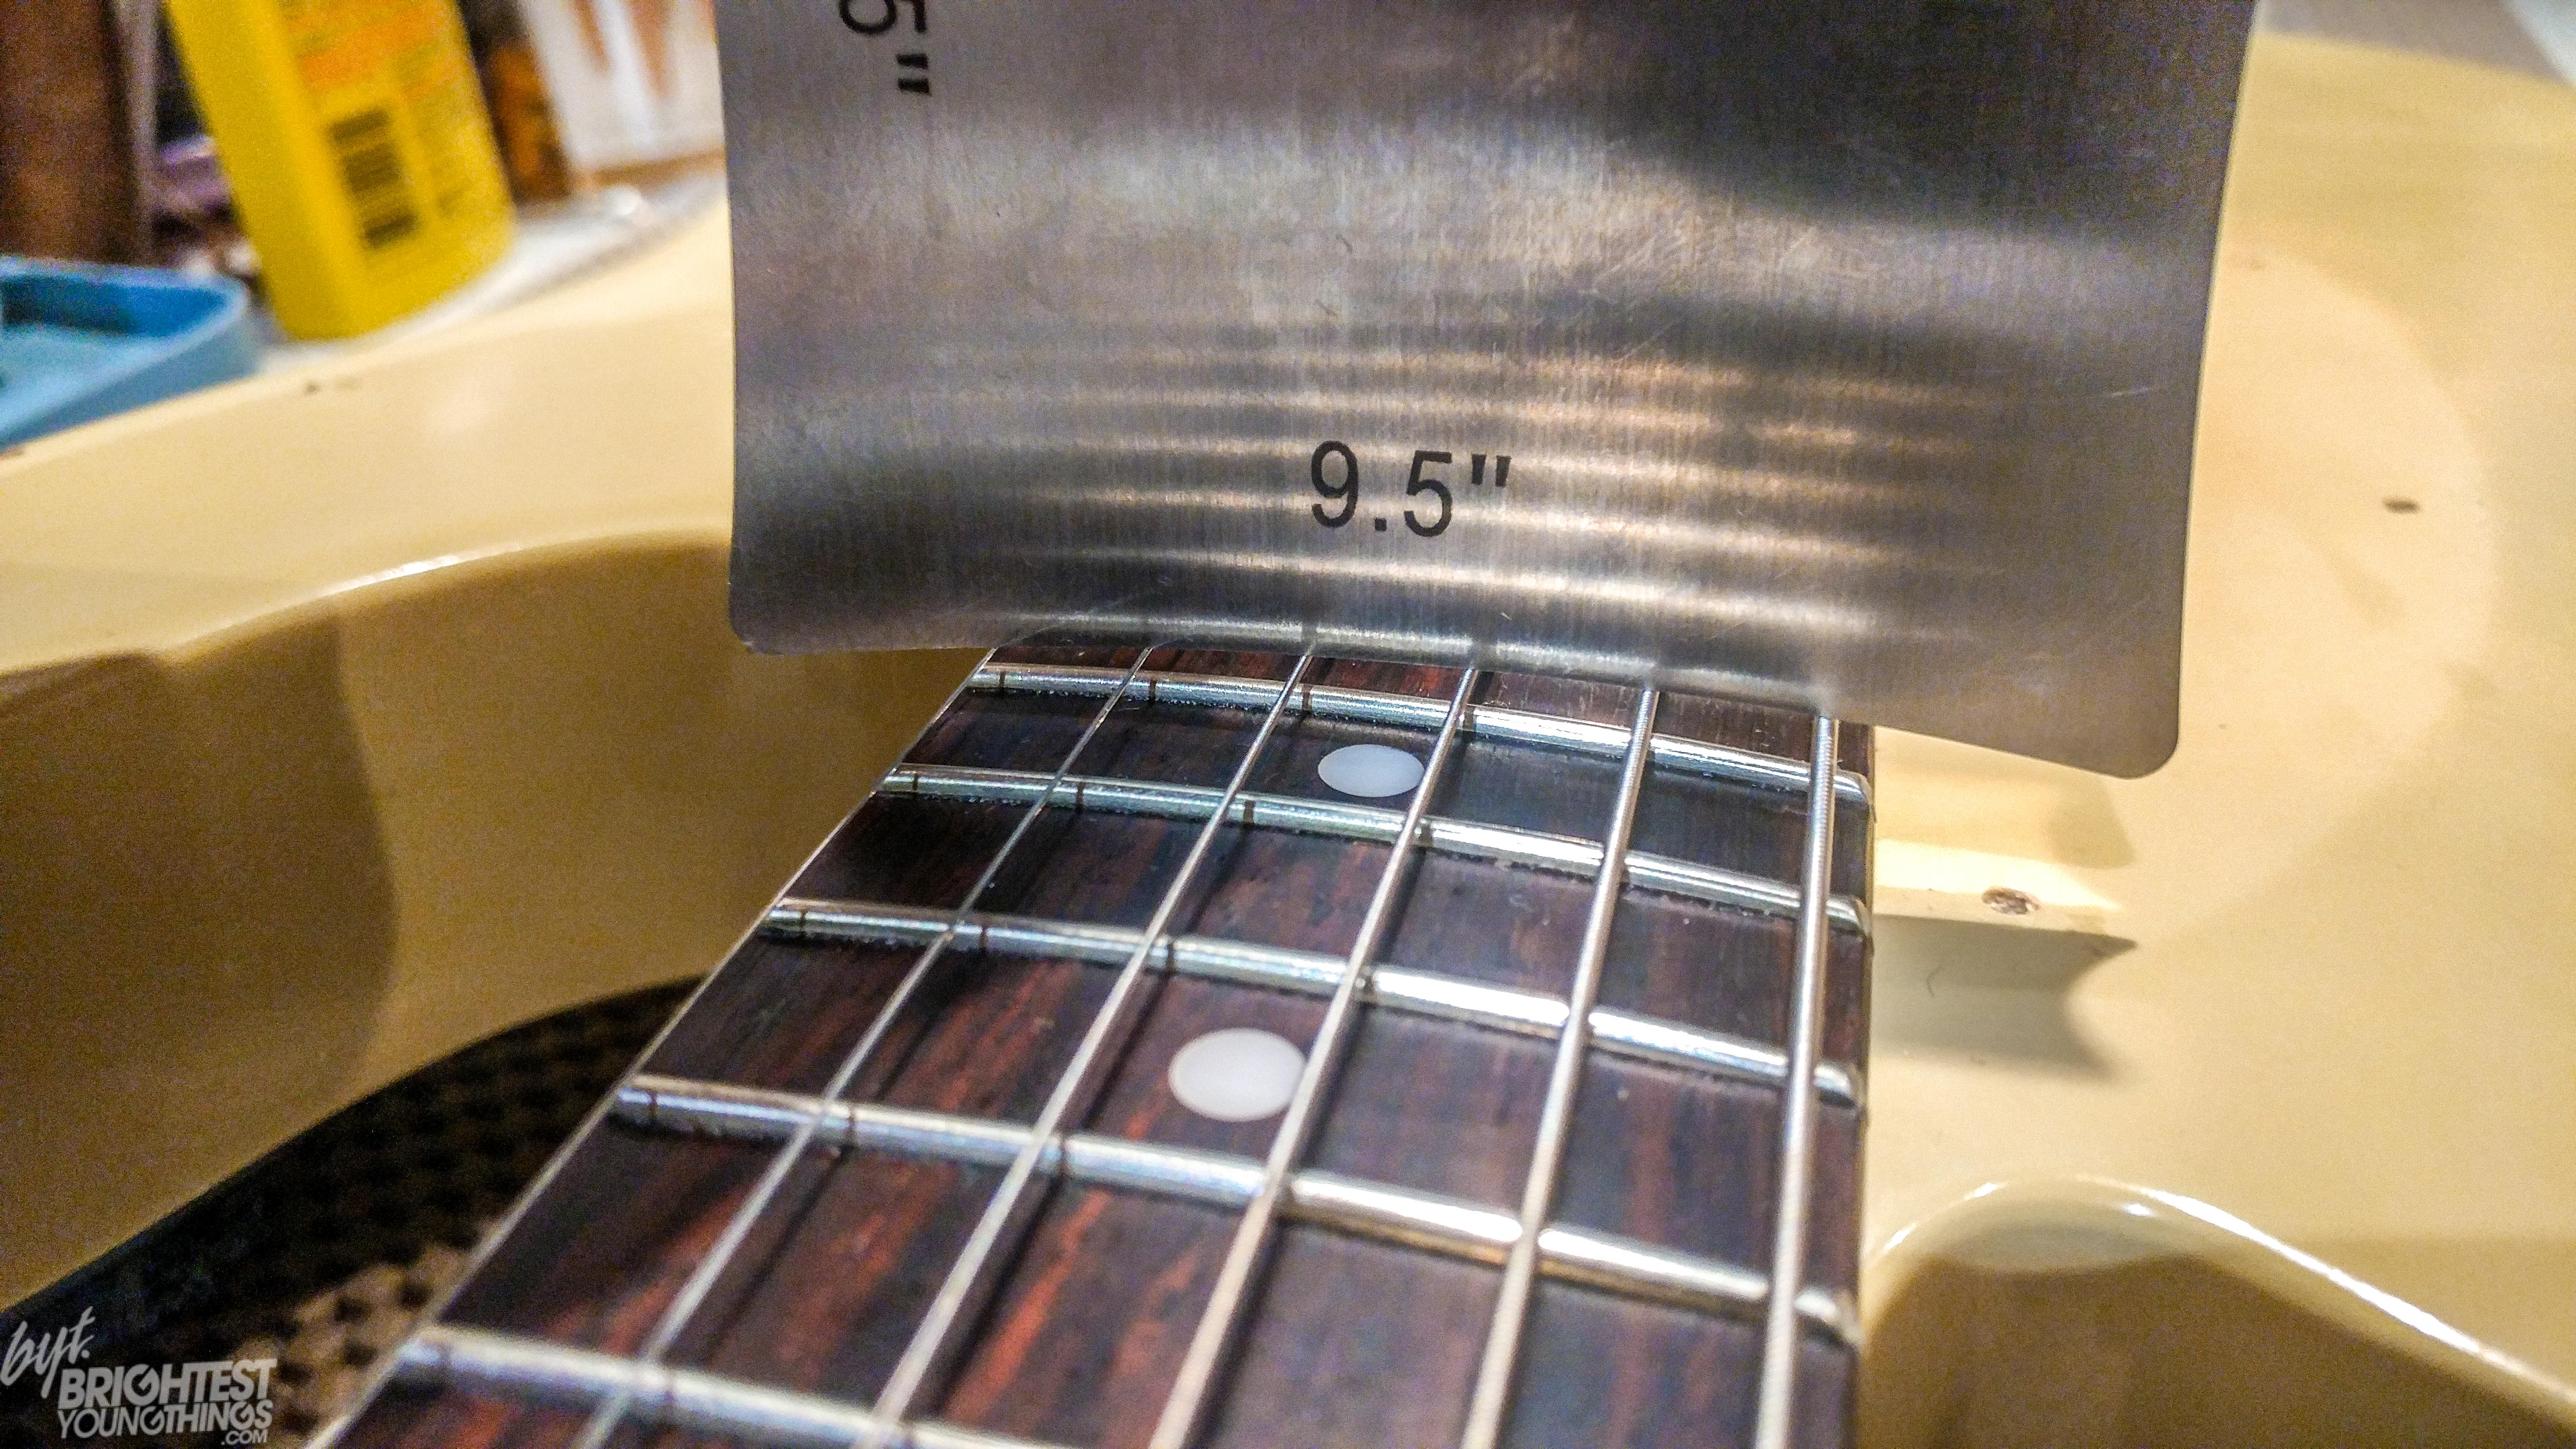 How To Build An Electric Guitar Wiring Diagrams Insight After Its A Matter Of Checking The Nut Slots For Proper Depth High Frets Putting Pickups At Right Height Testing Electronics